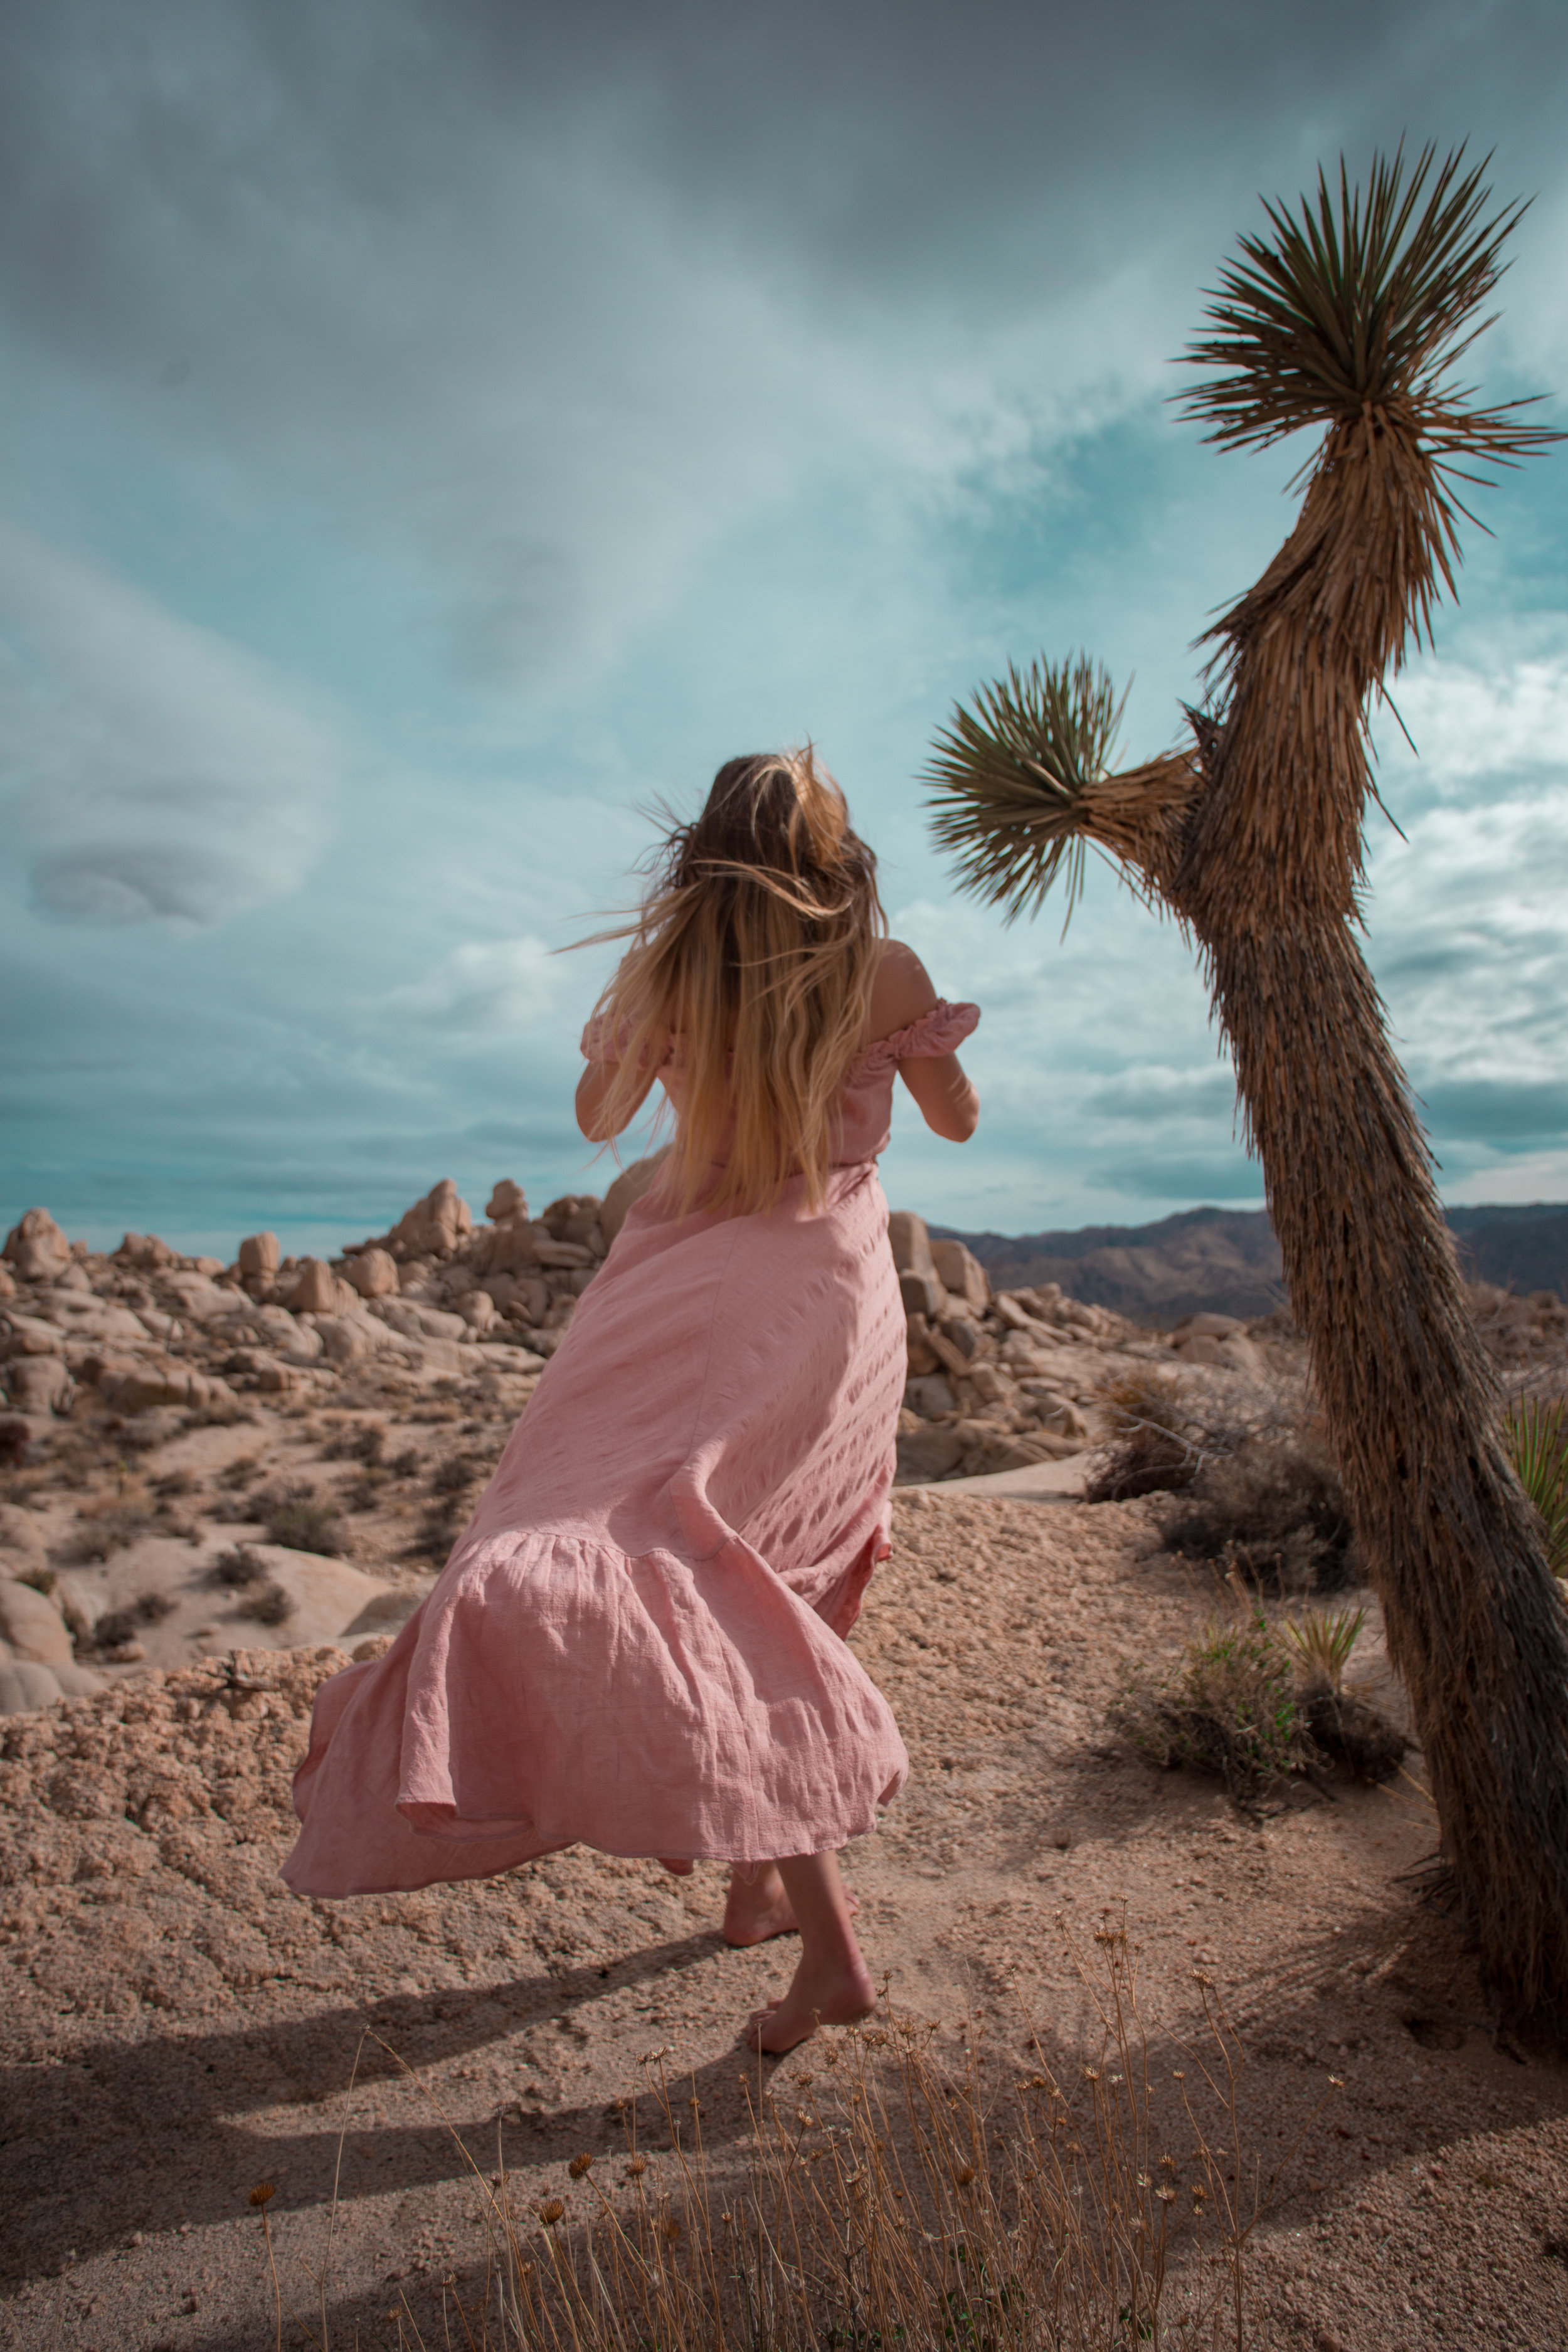 AstroBandit_JordanRose_Auguste_The_Label_LightPink_Spring_2018_Fashion_Maxi_Dress_Joshua_Tree_Storm_3.jpg